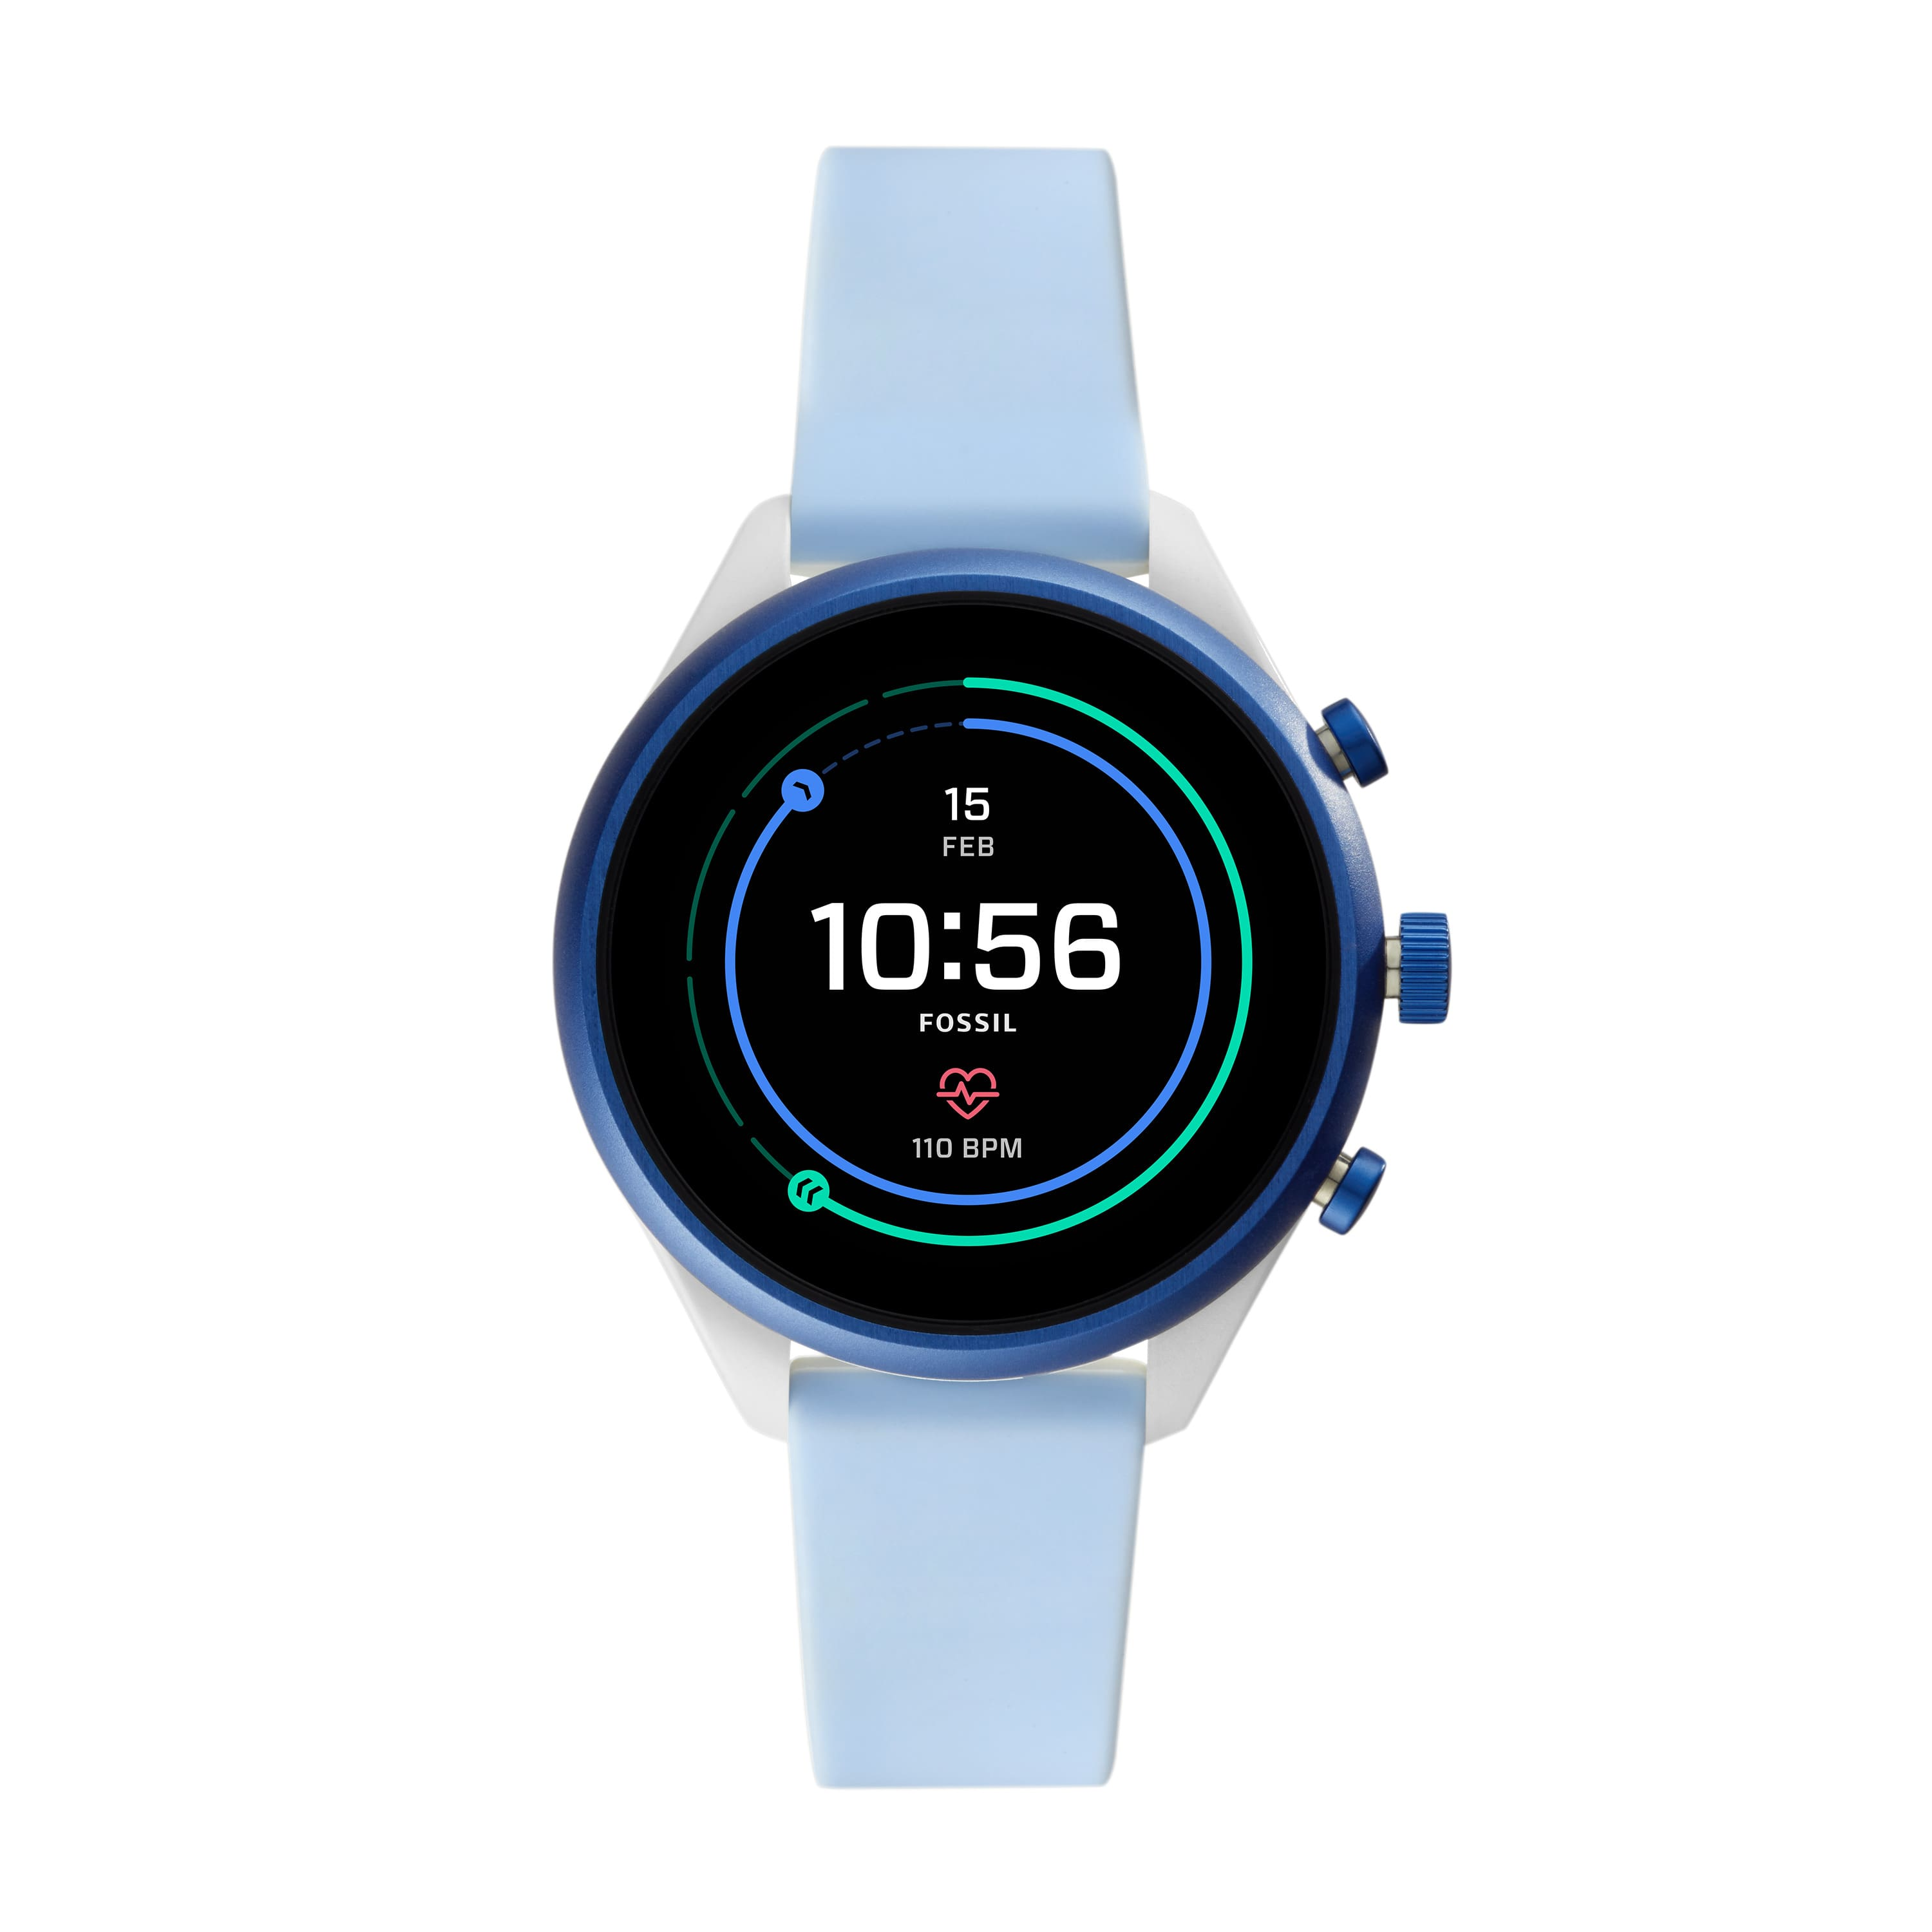 Fossil Sport Women's Smartwatch - Light Blue Silicone 41mm - Powered with Wear OS by Google $149